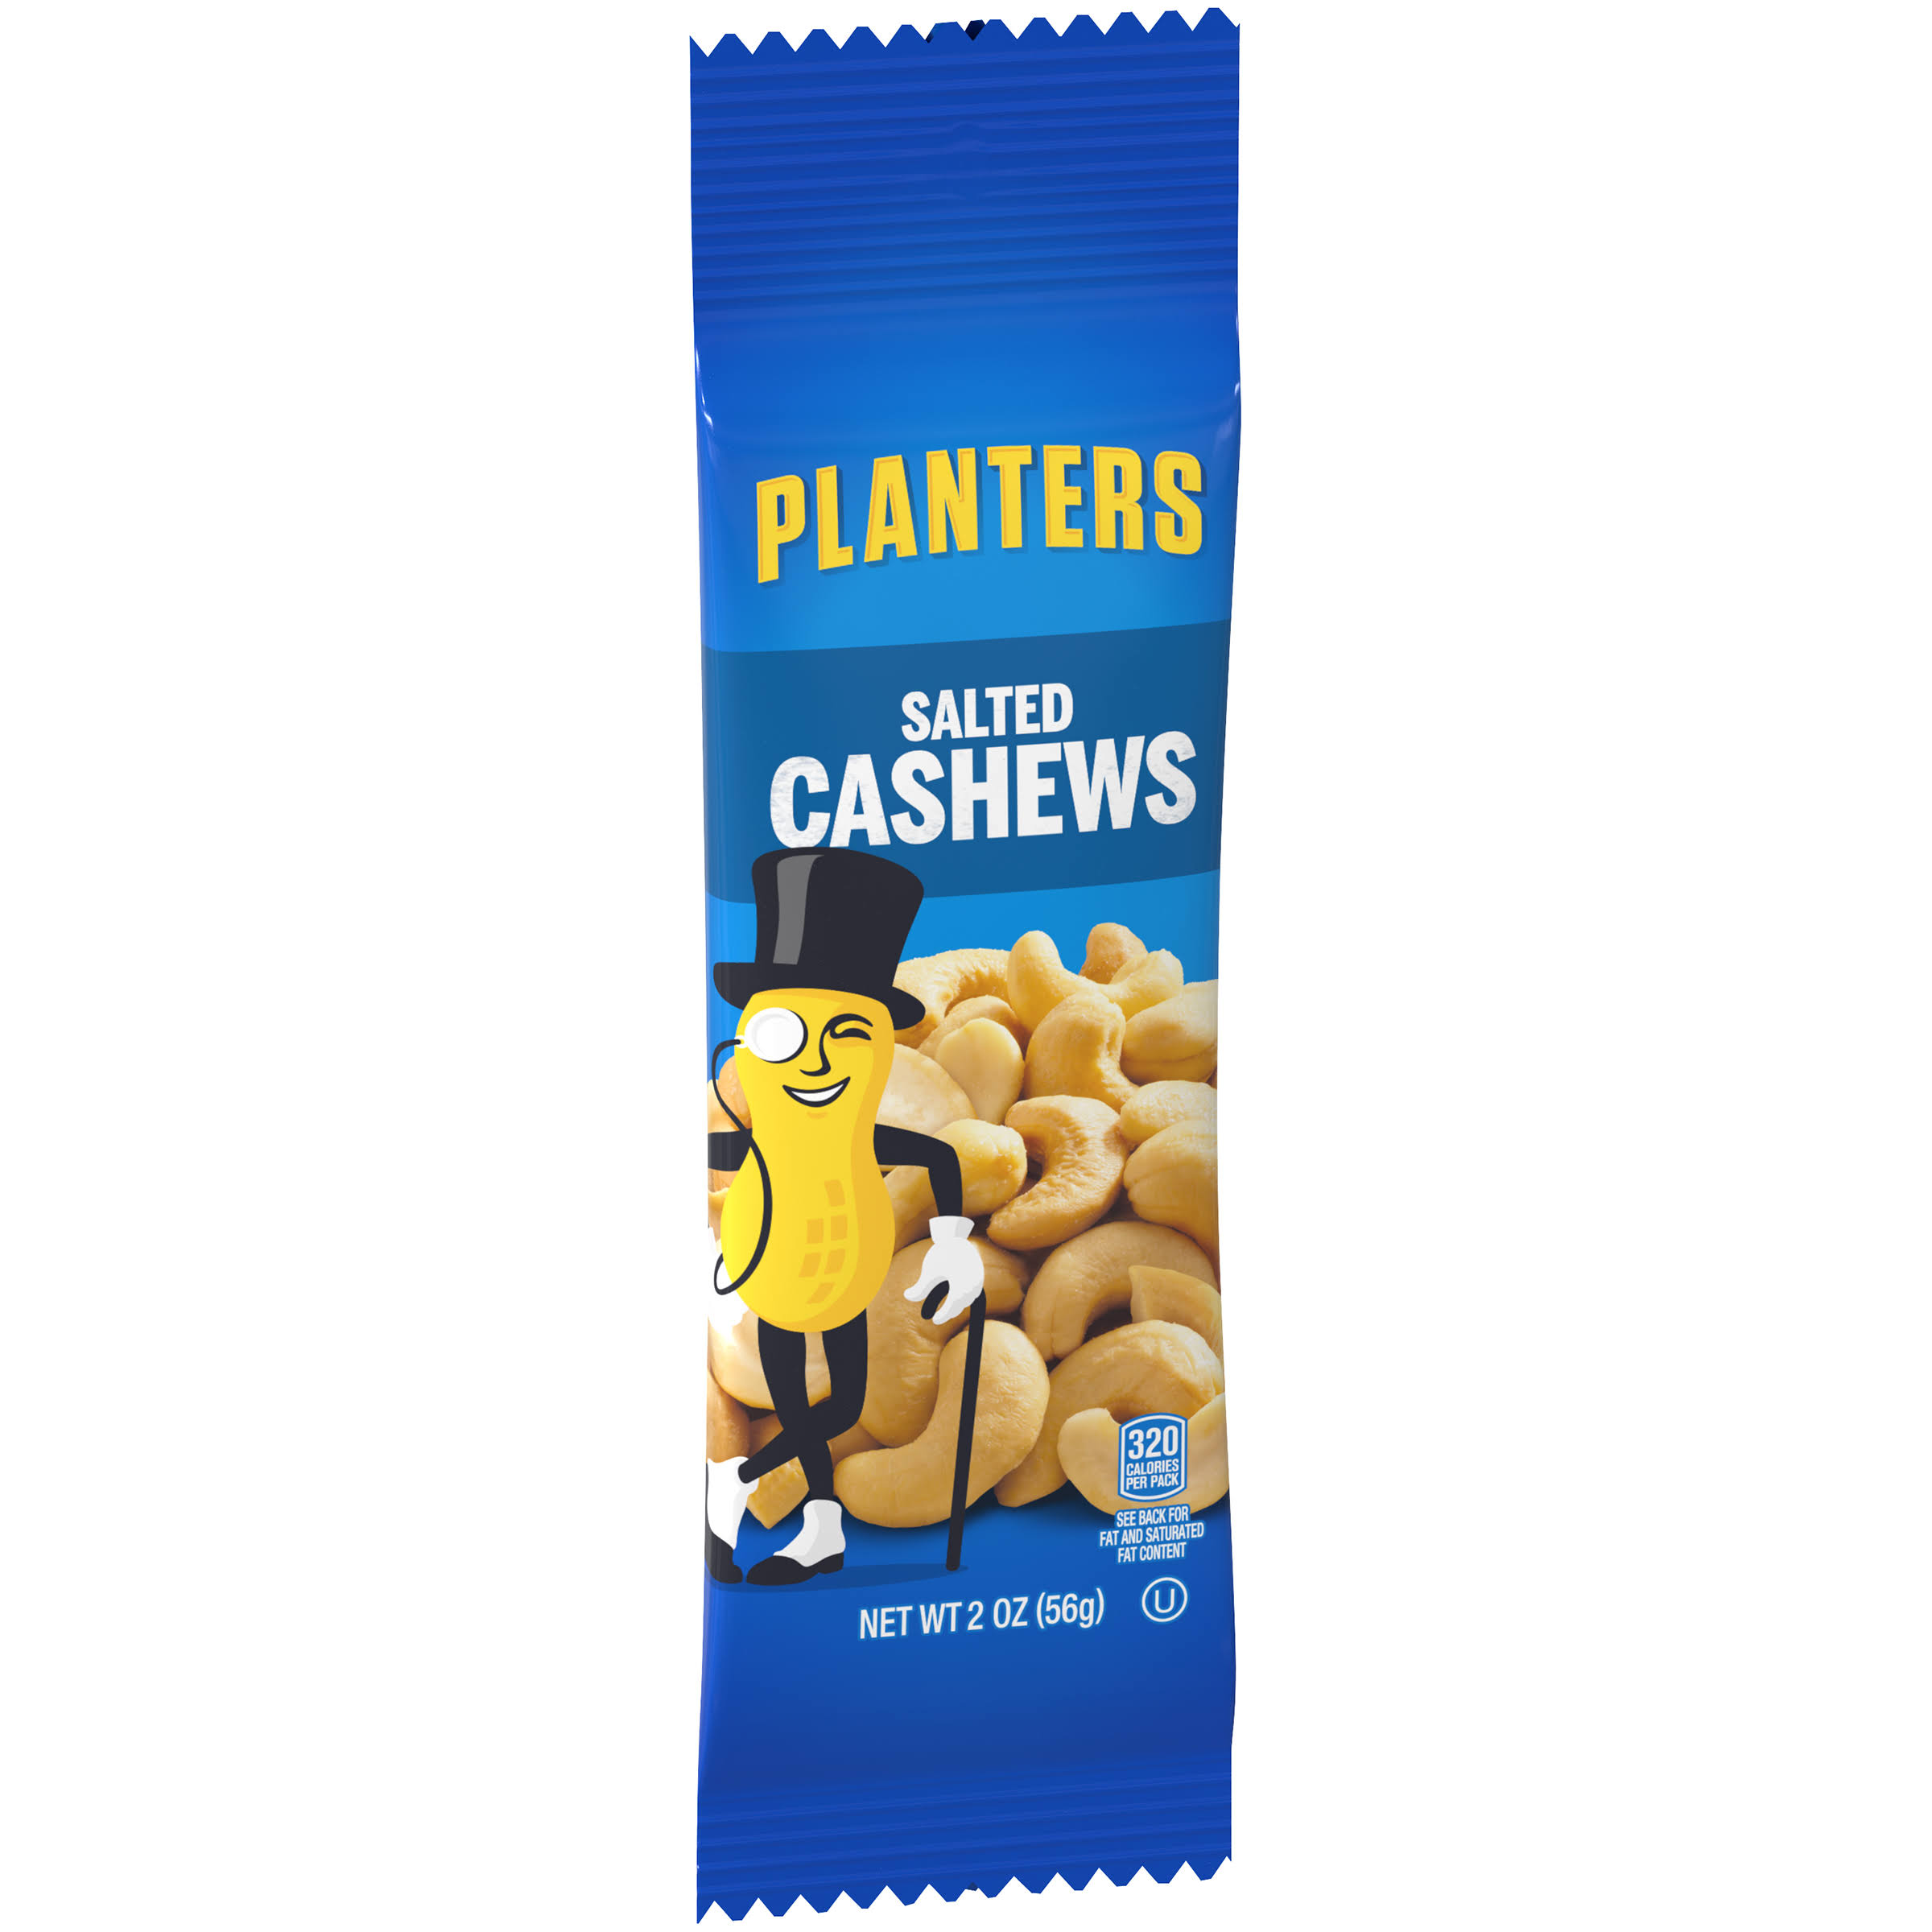 Planters Salted Cashew Nuts - 2oz